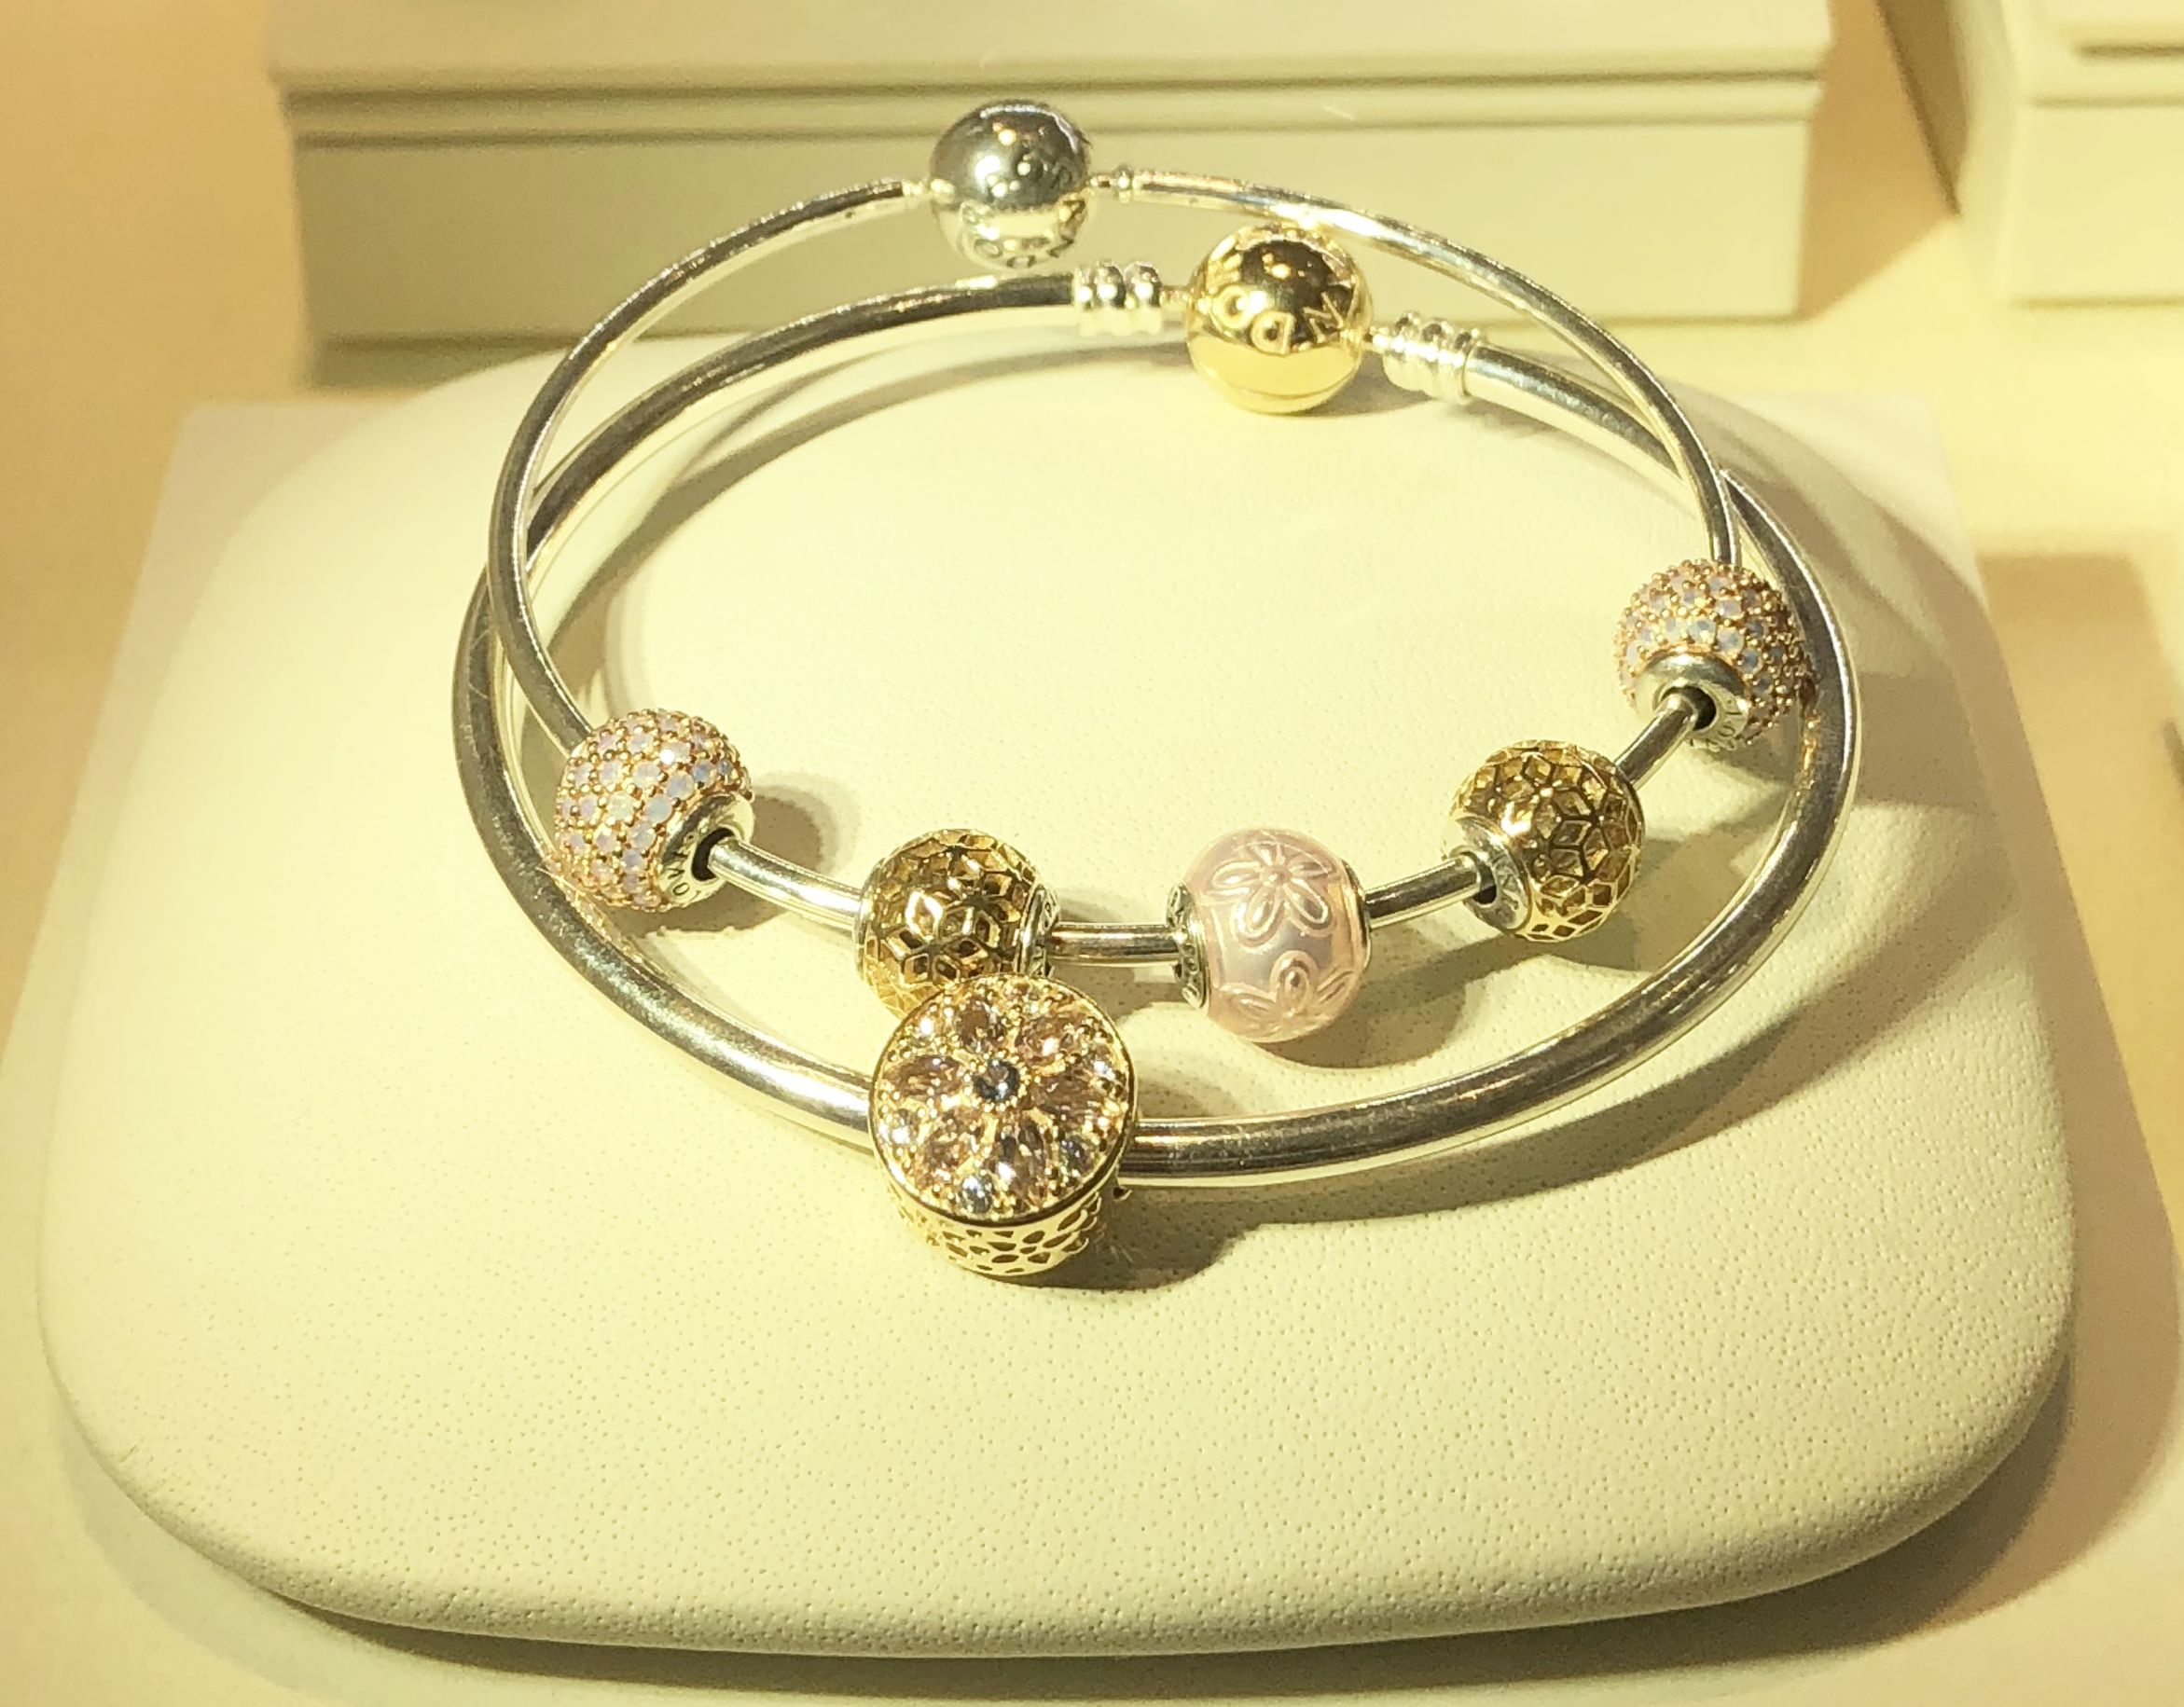 fabaa58f8 Pandora two tone pink floral essence 14k gold charm bracelet display by  Janelly